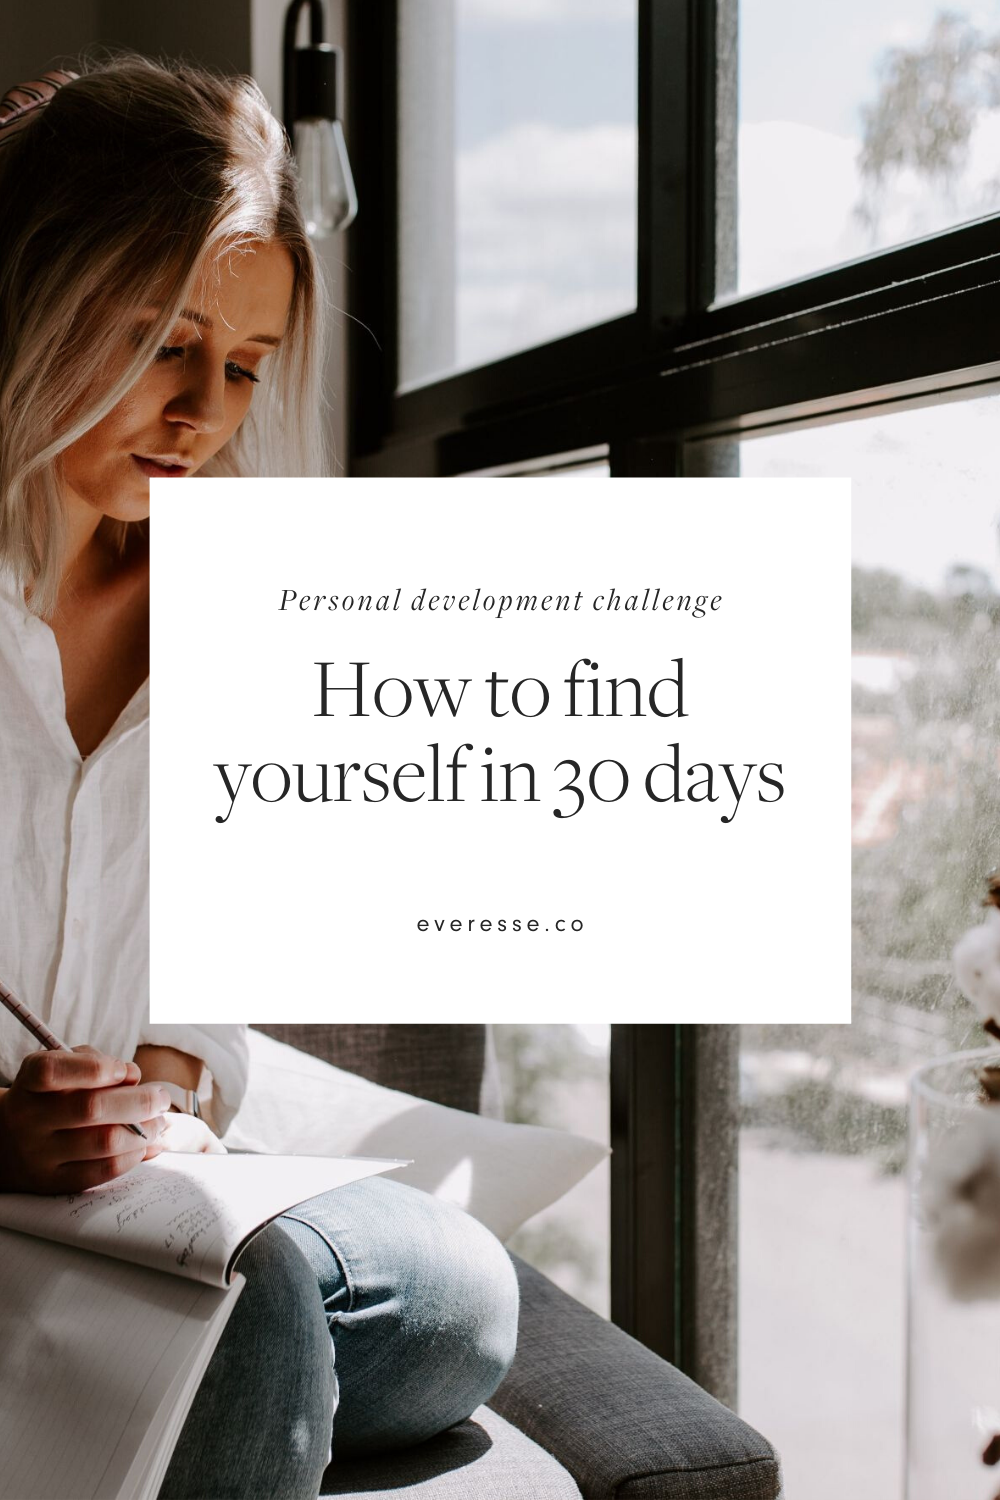 Personal development challenge: how to find yourself in 30 days